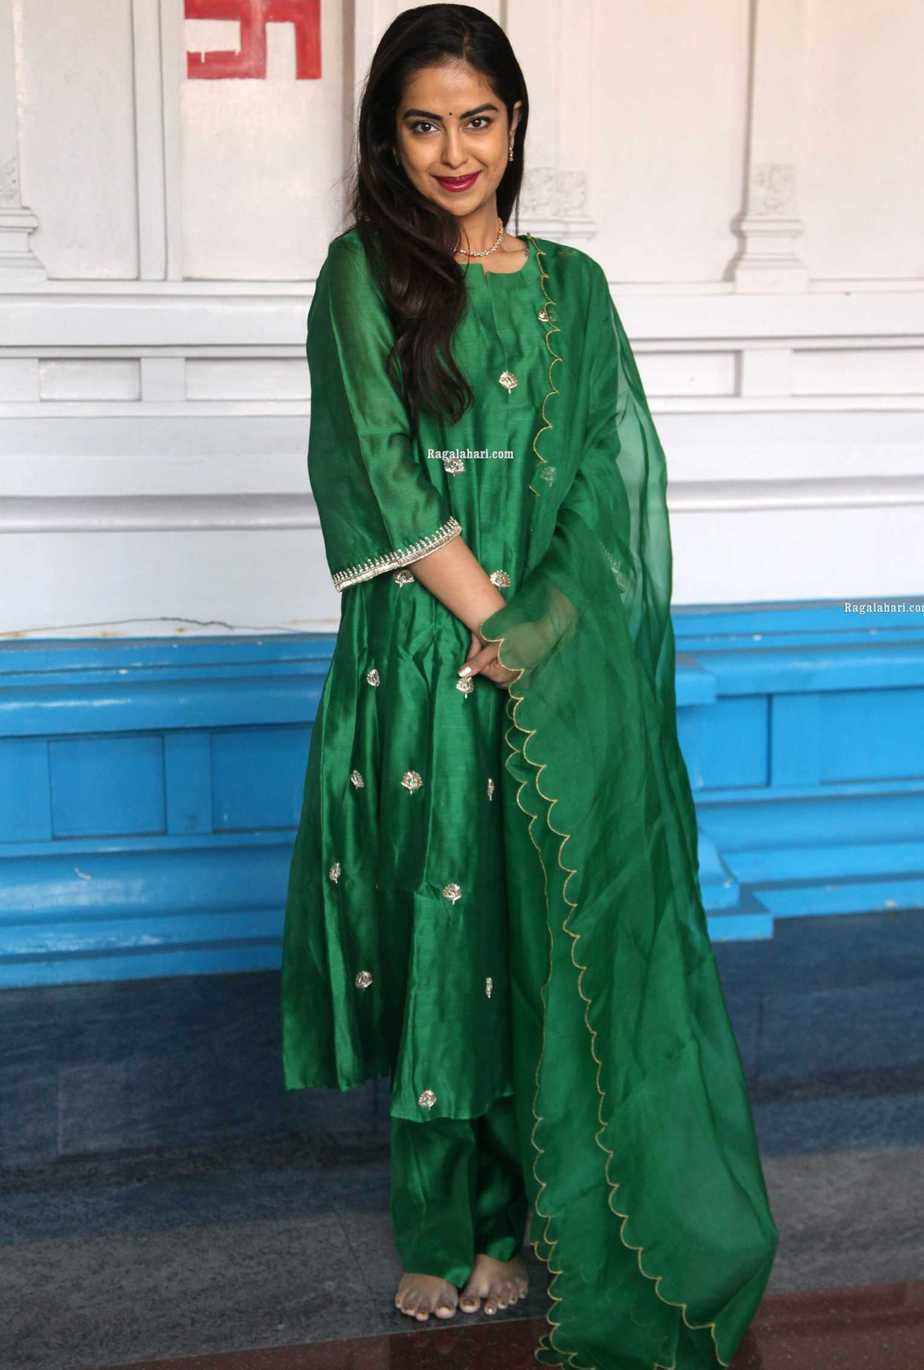 Avika gor in green house of pink kurta set at film temple for new movie puja1.4